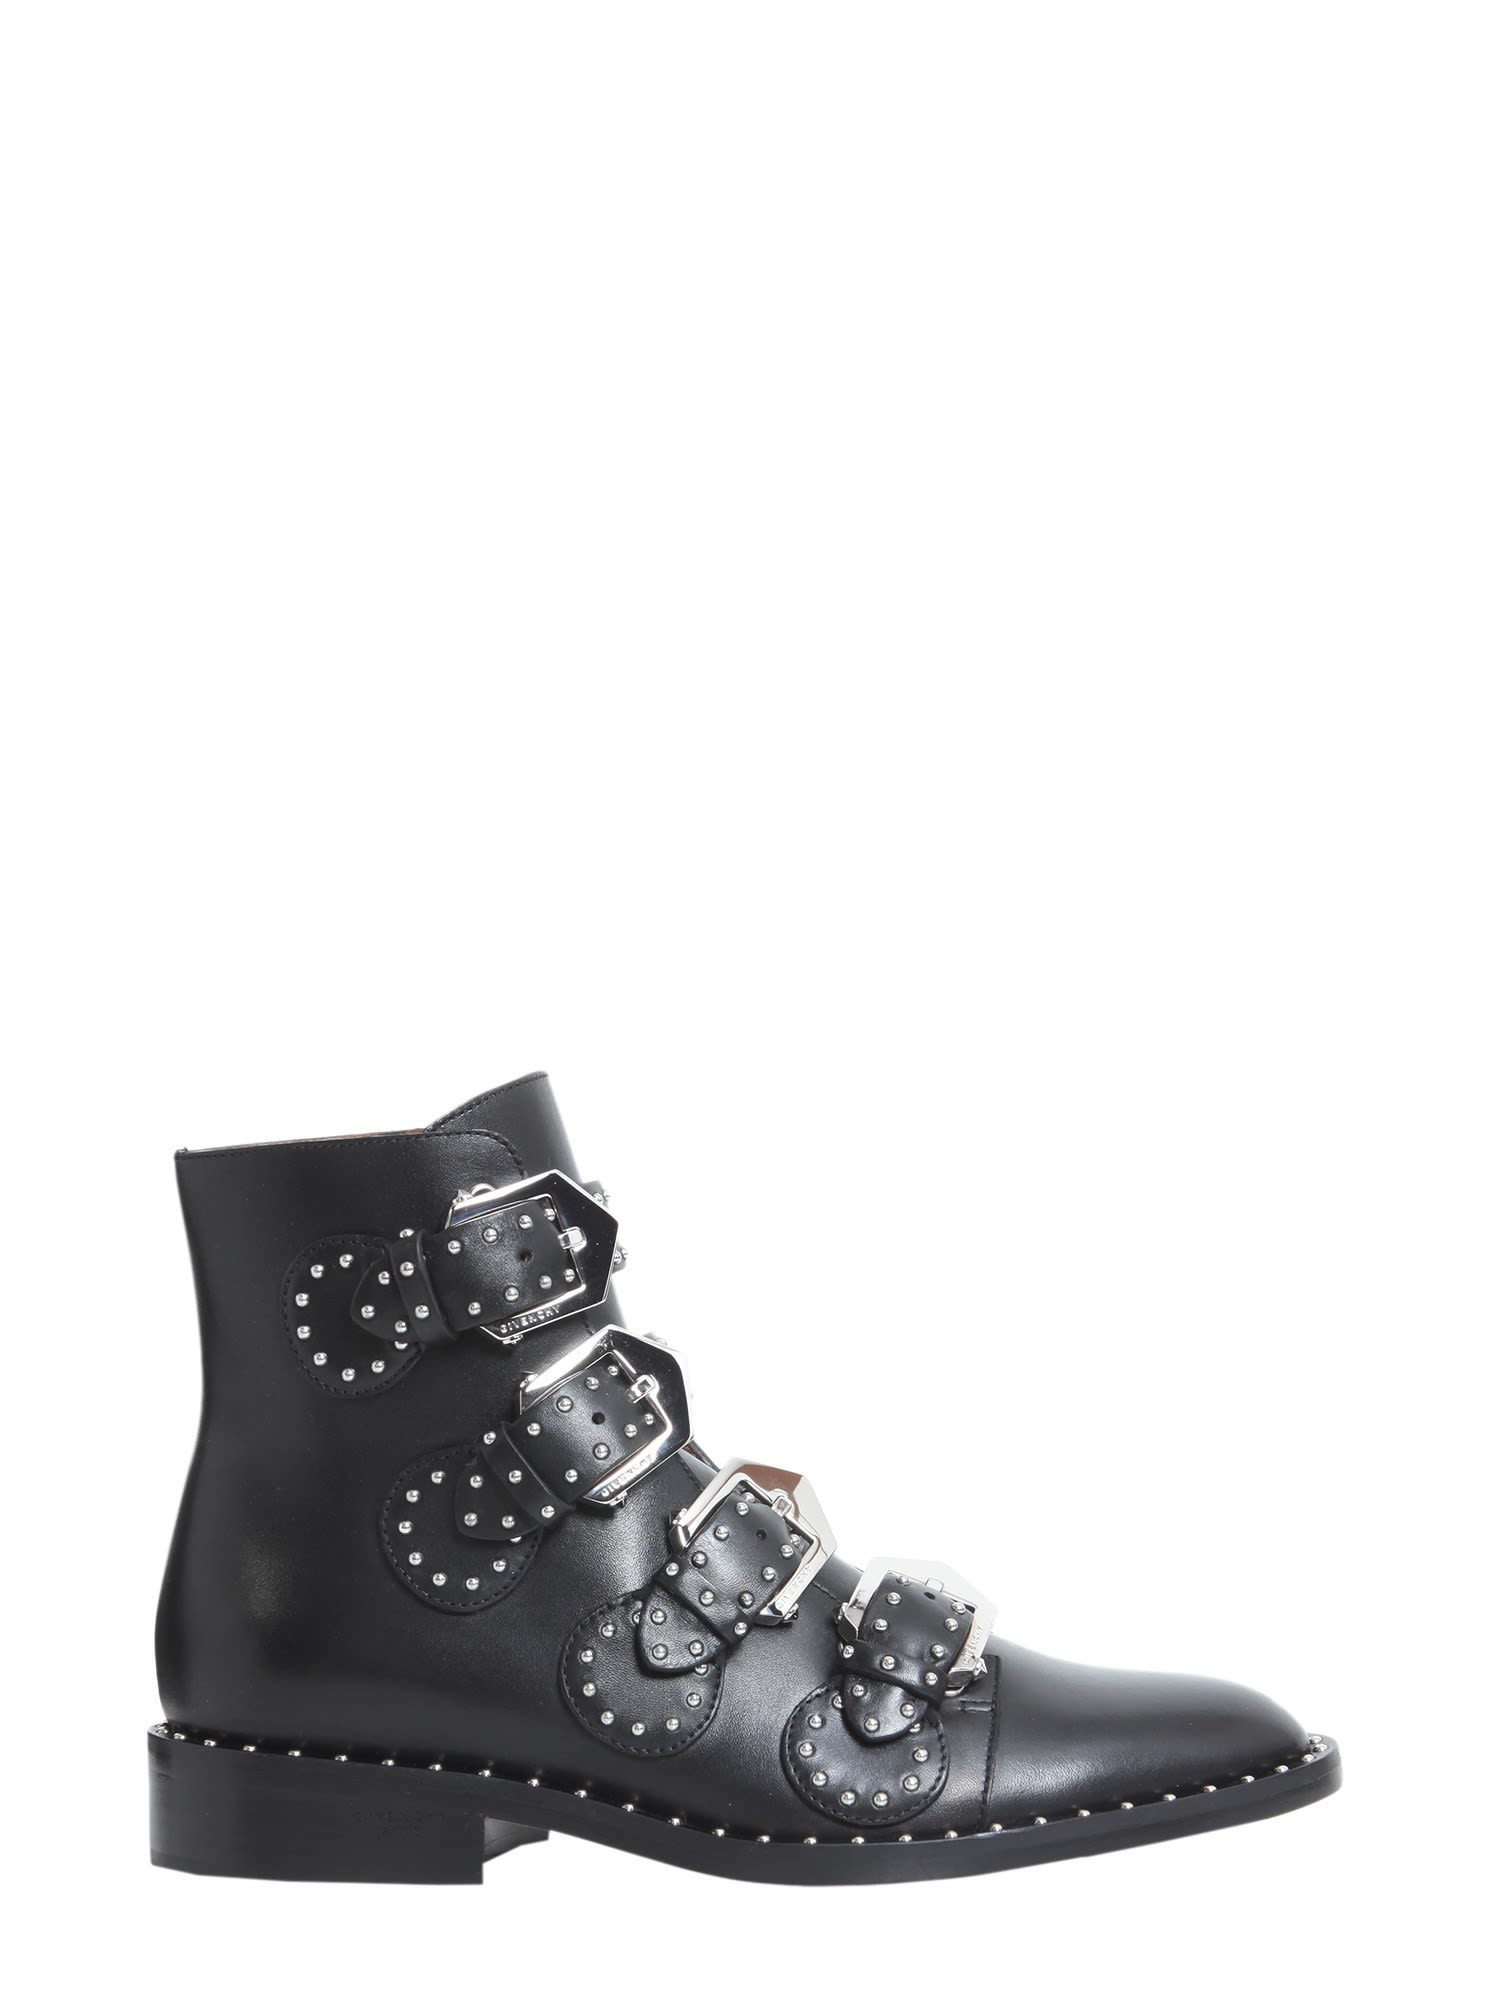 Givenchy Elegant Studs Flat Ankle Boots Nero Women S